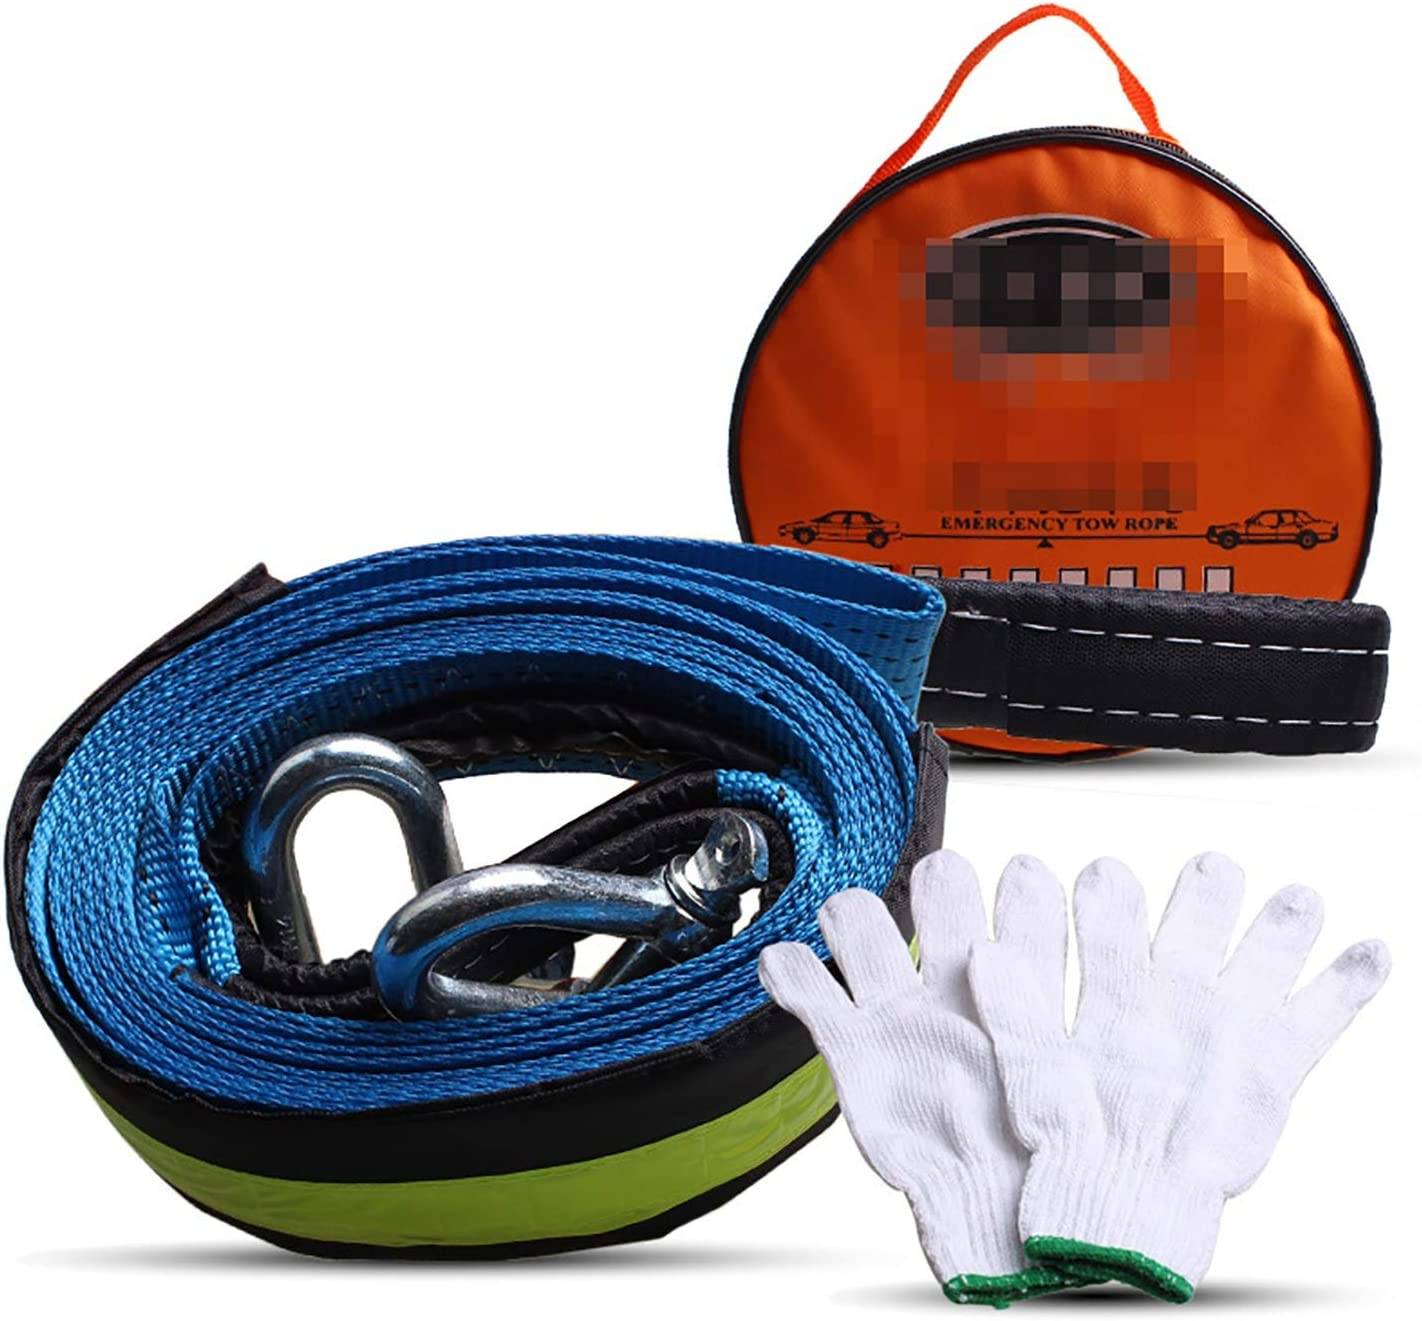 HEQCG Popular Max 51% OFF popular Tow Rope Traction 3 4 tons Doubl Bearing 5m 8 Long